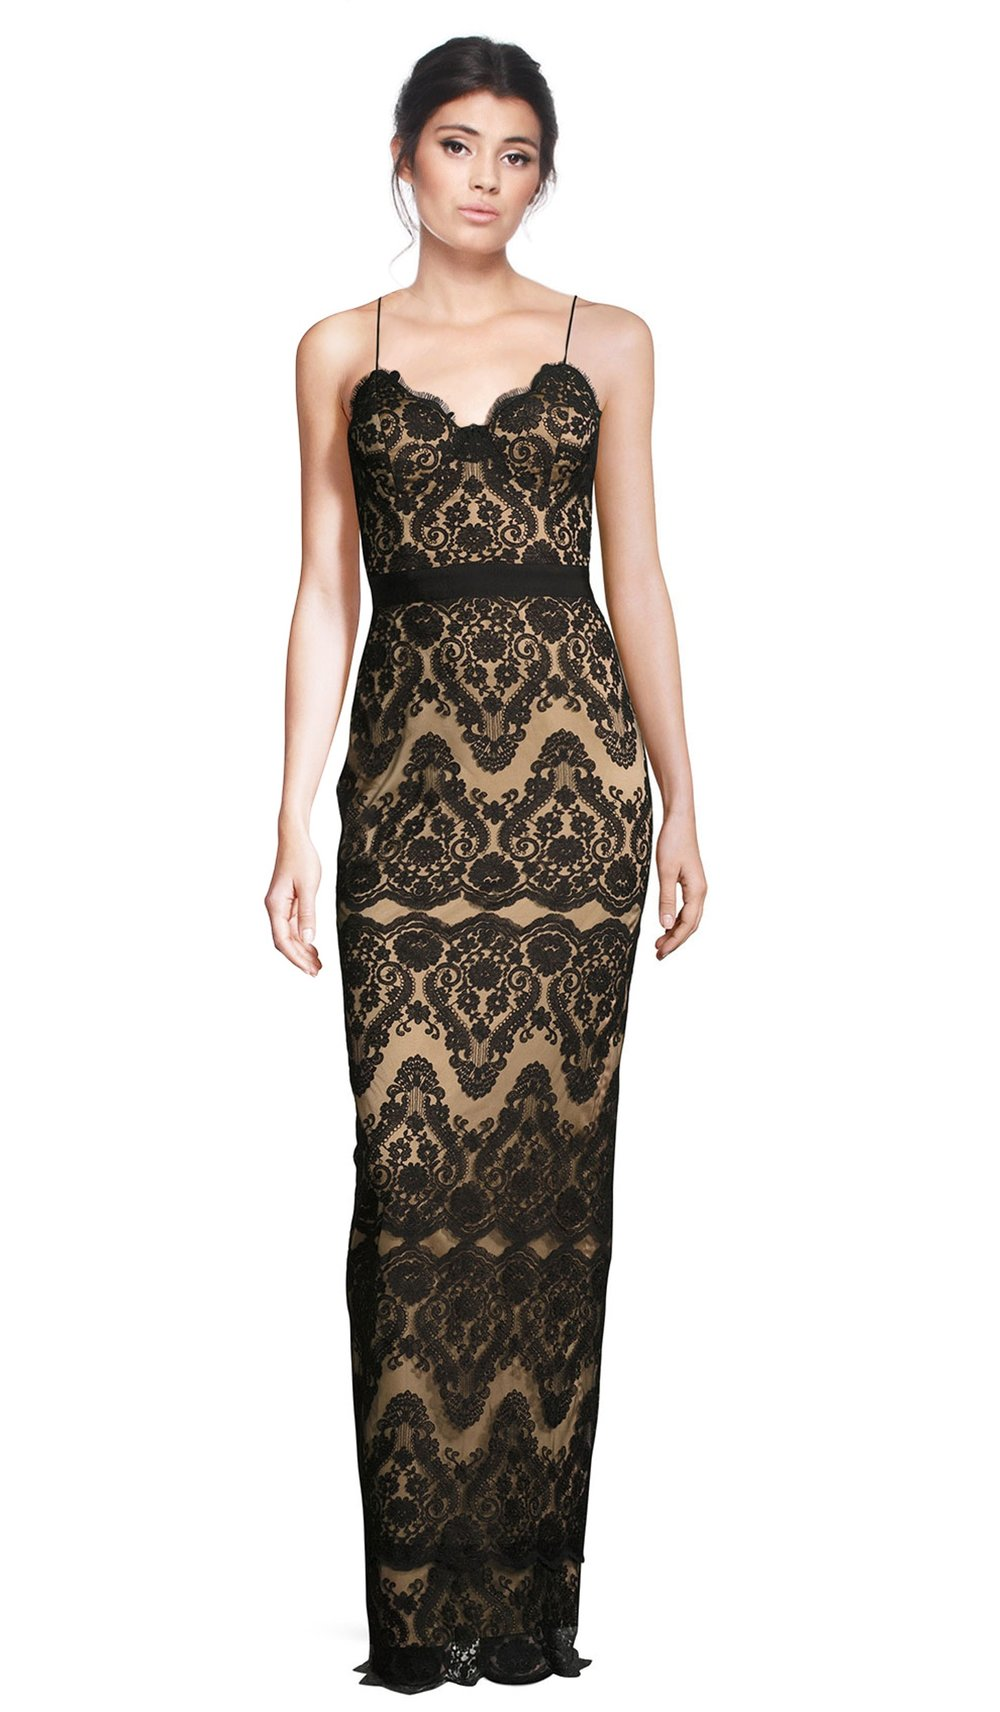 Lace Bodycon Dress - CATHERINE DEANE — Chic by Choice Sale